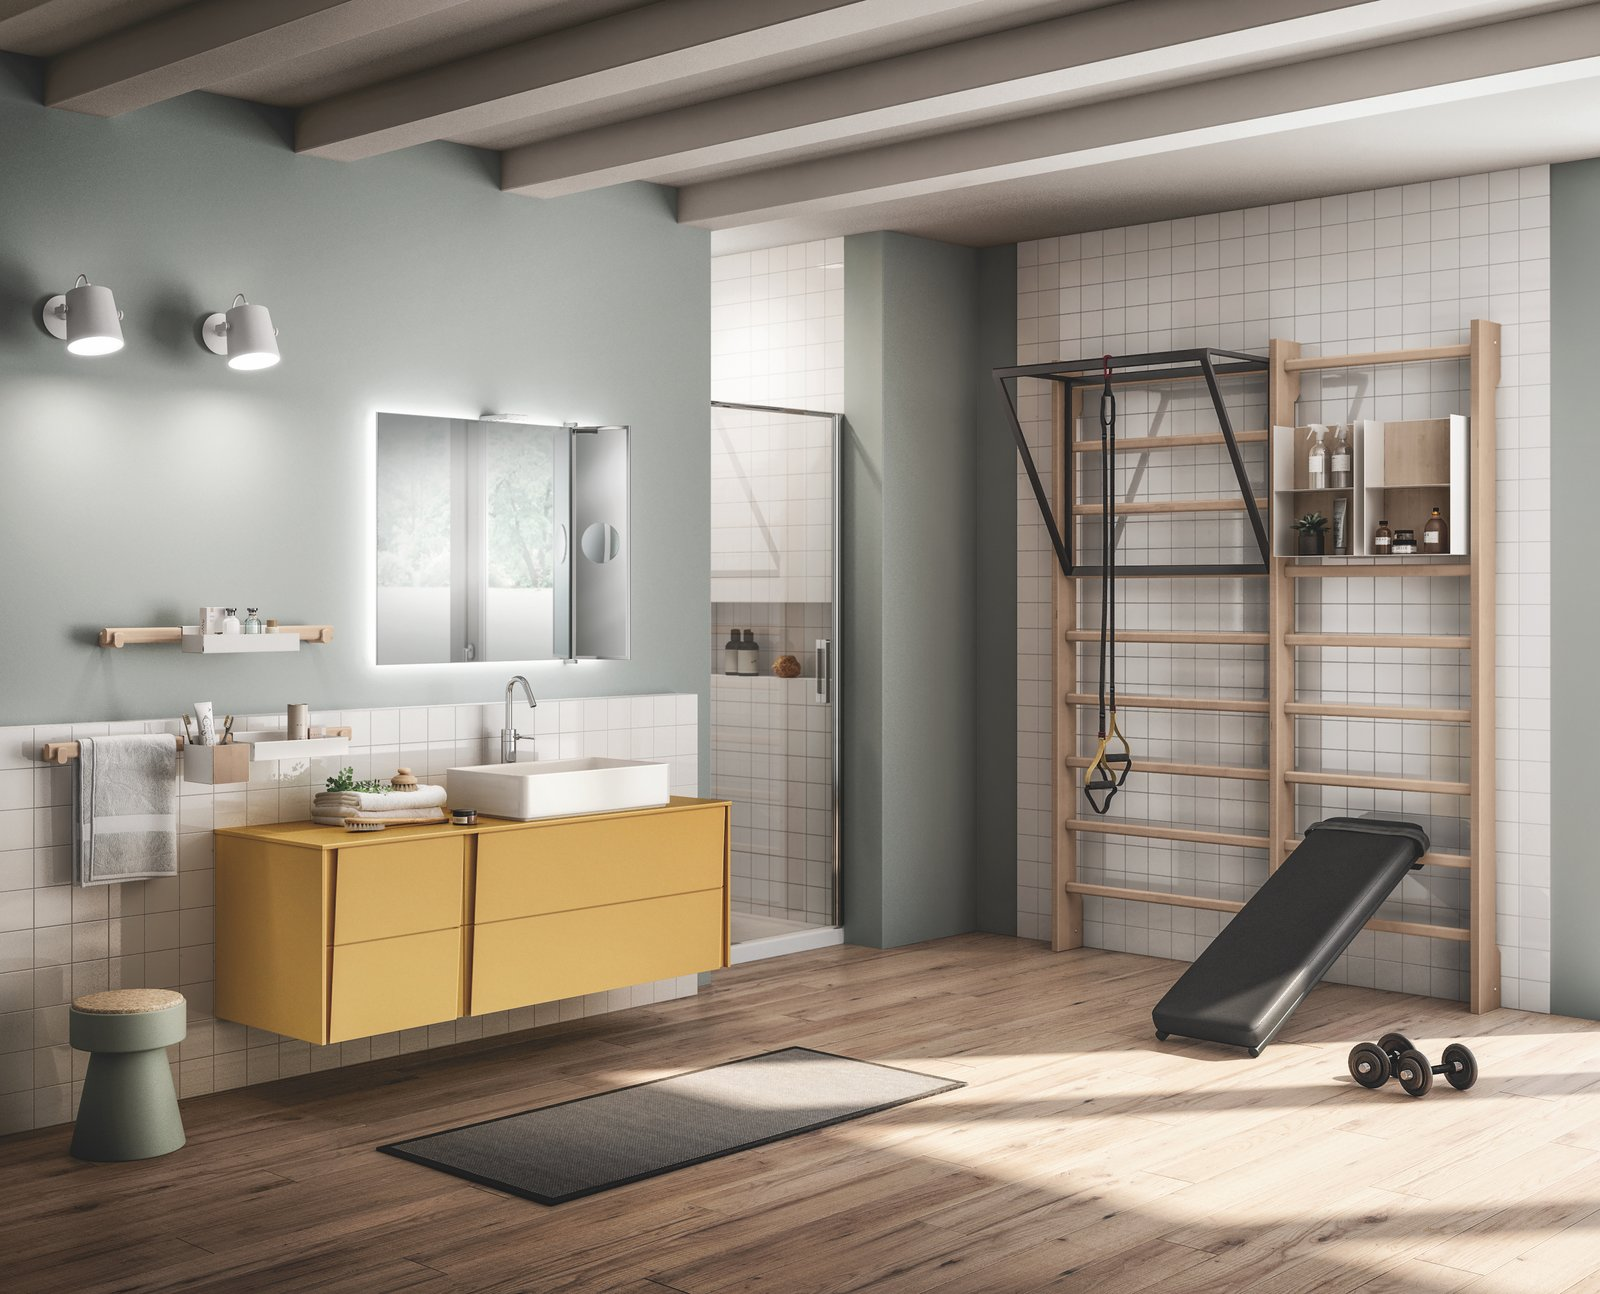 Gym Space by Scavolini and Mattia Pareschi